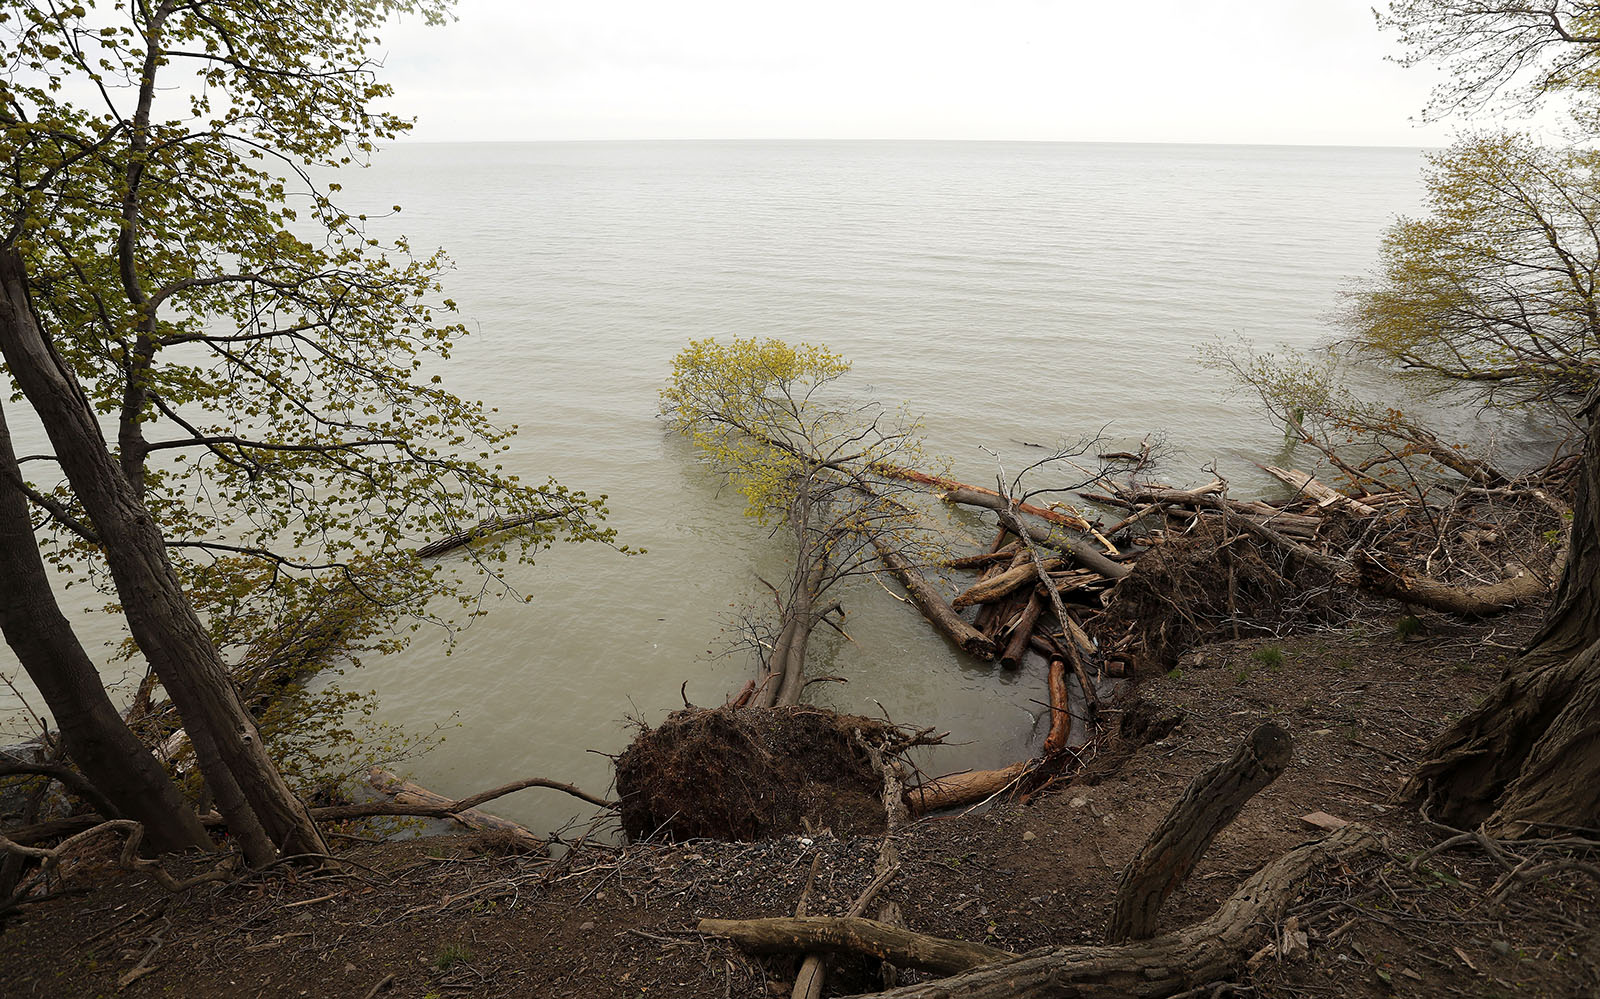 Trump approves disaster aid for Lake Ontario flooding